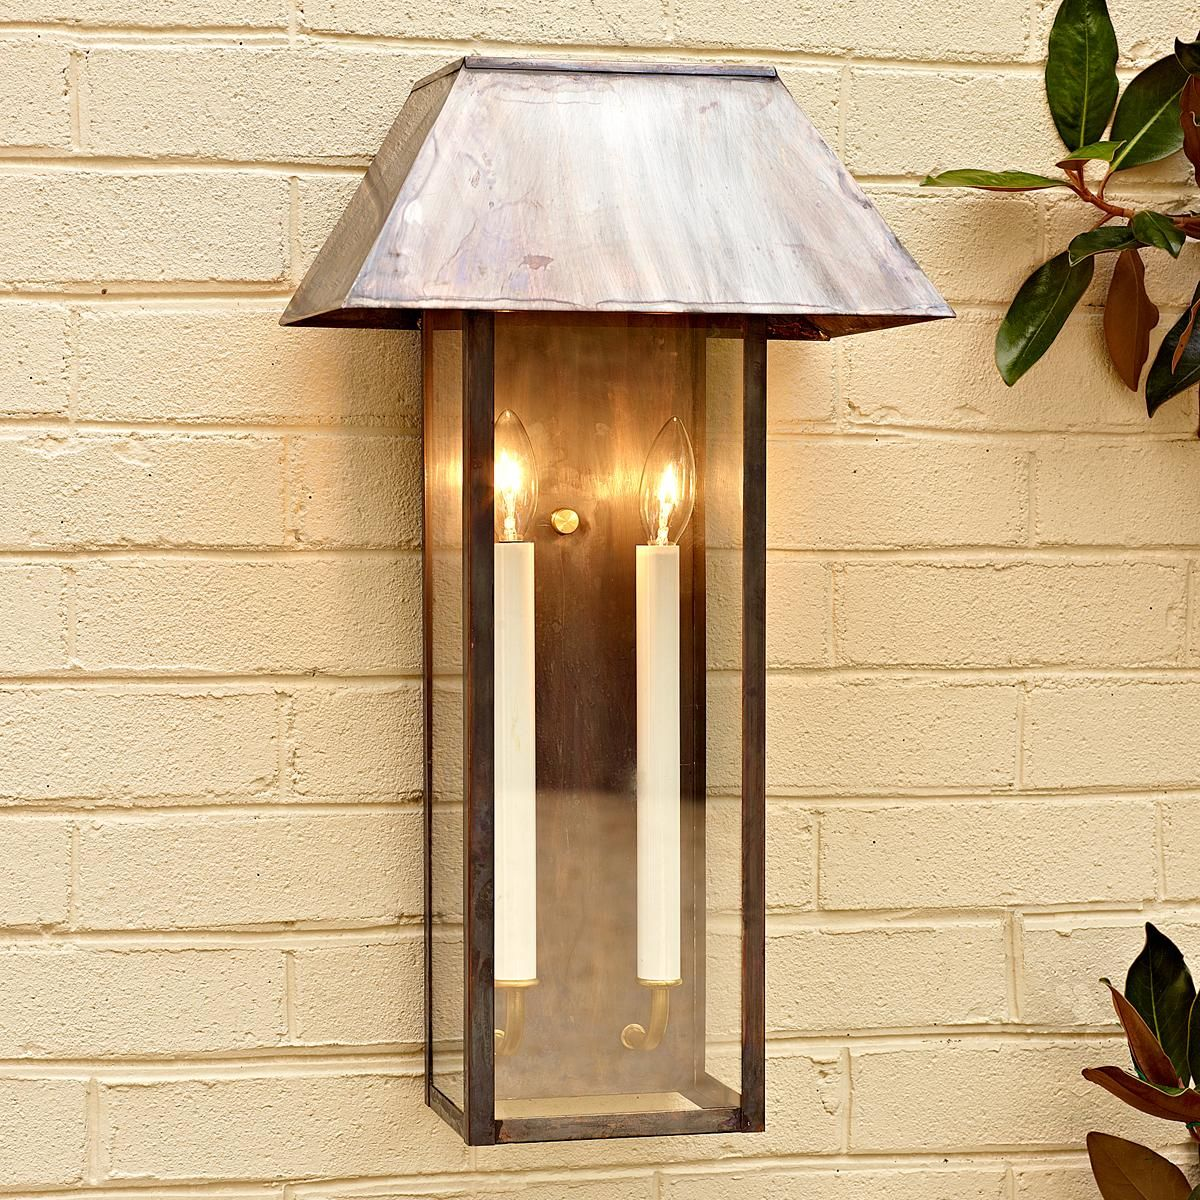 Outdoor Lighting For Beach House: Modern Tower Outdoor Light